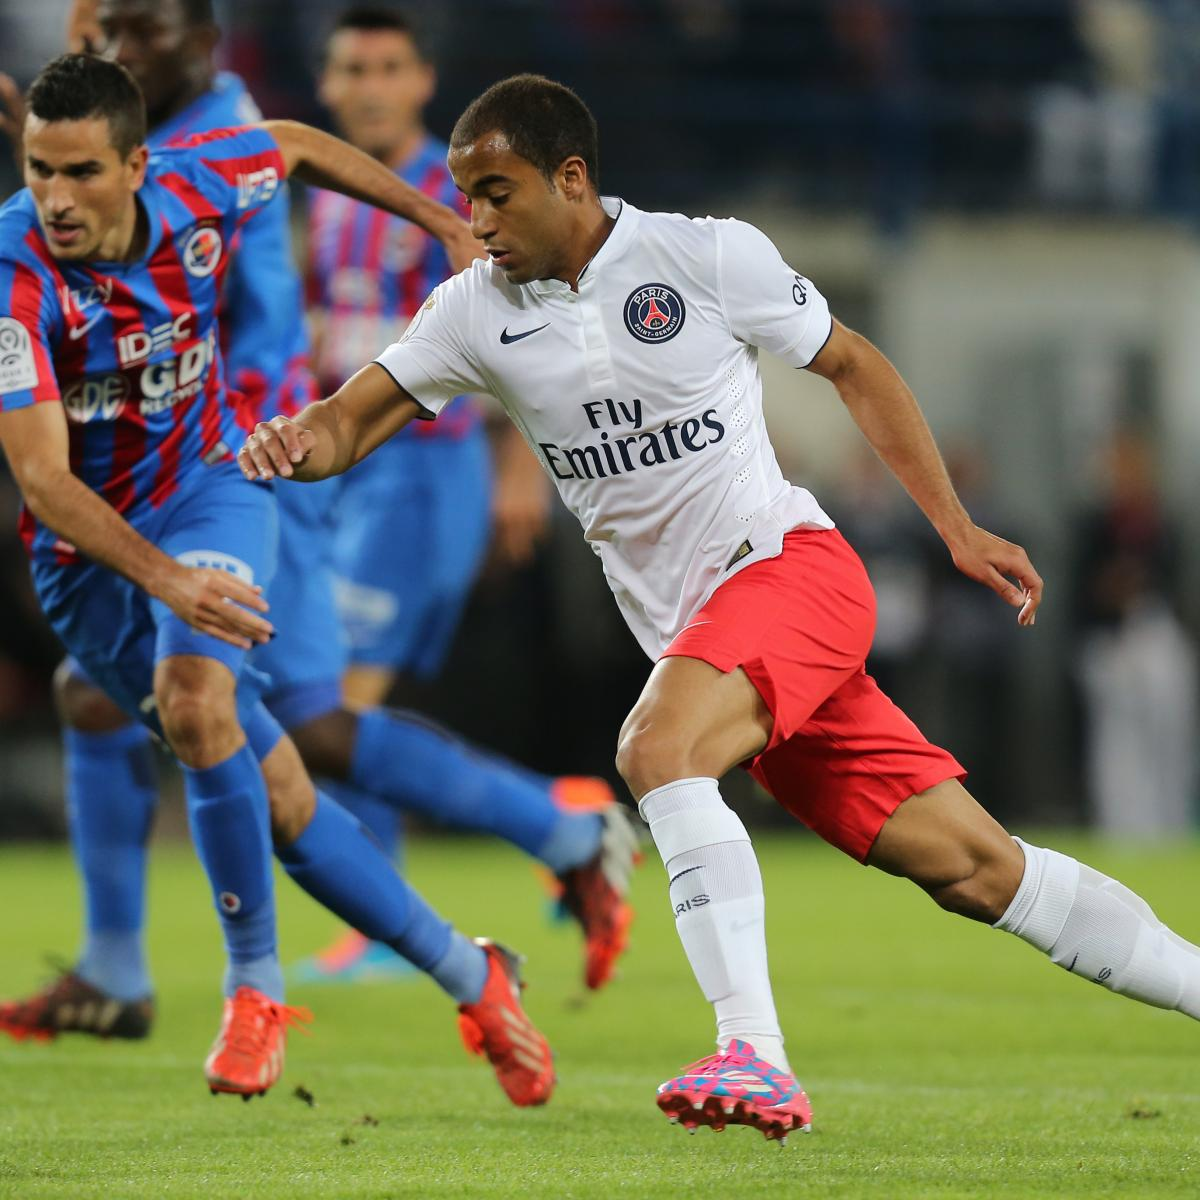 Lucas Moura: Finally Becoming A Superstar At Paris Saint